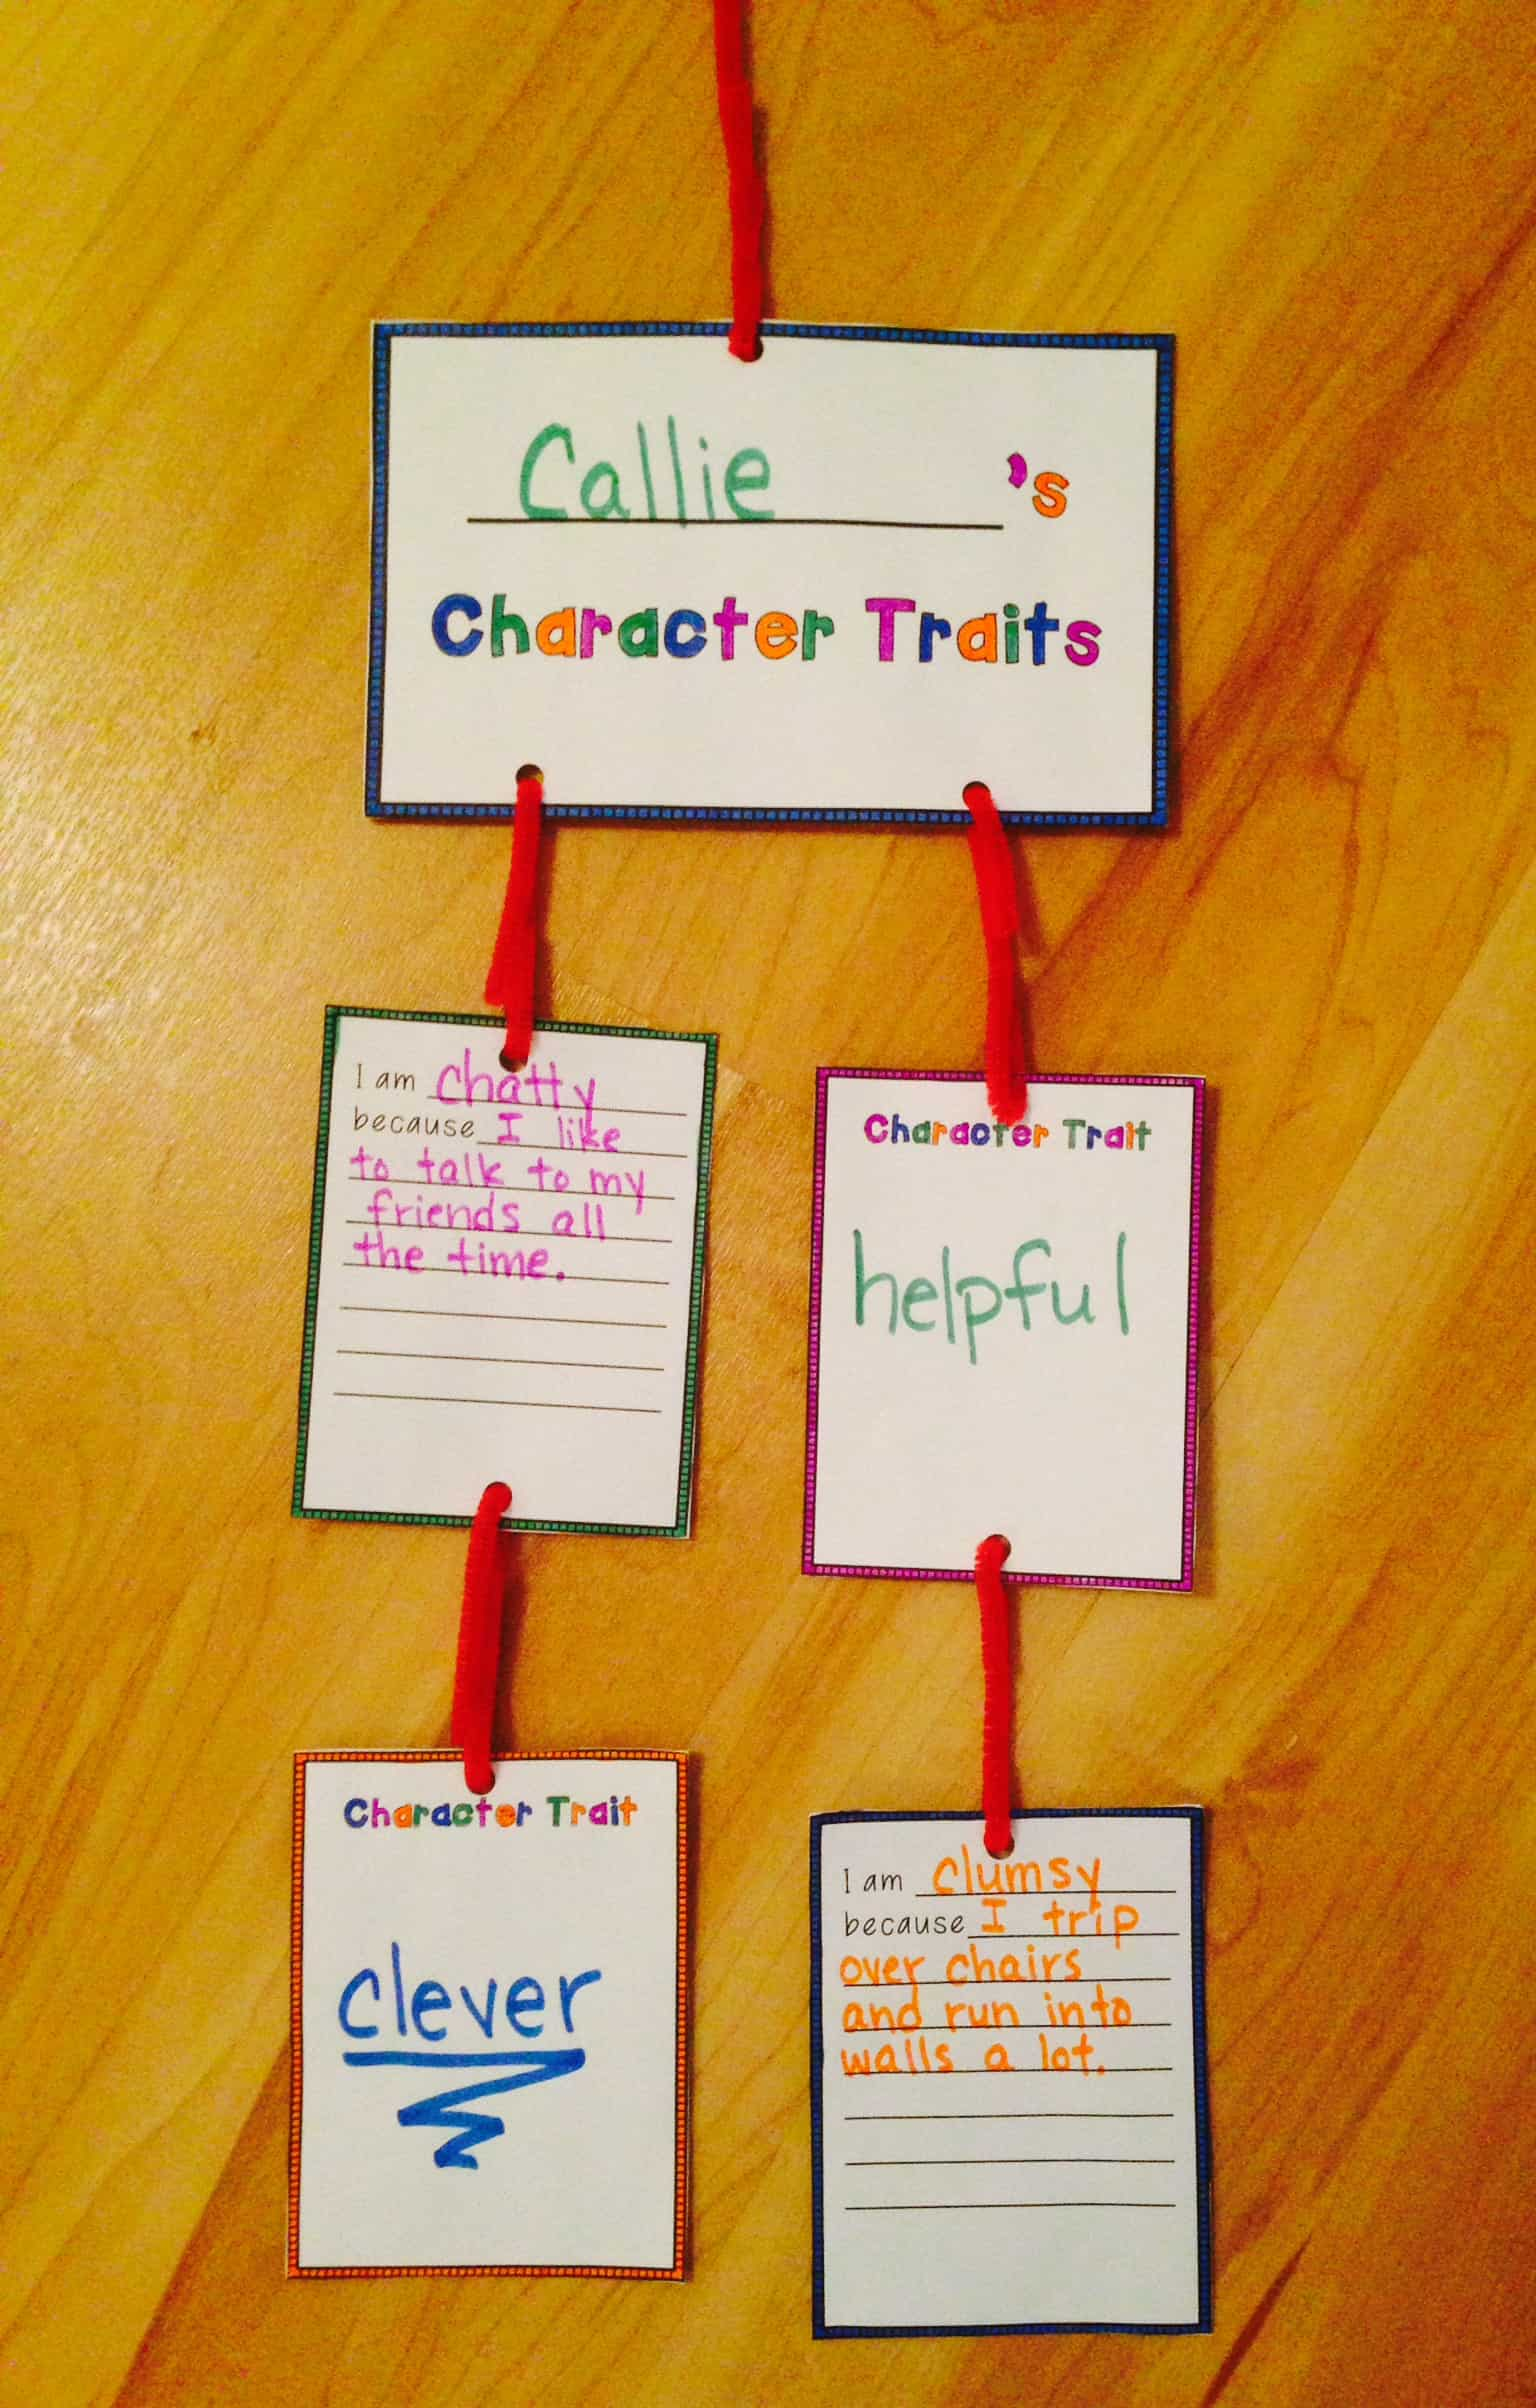 Introducing Character Traits